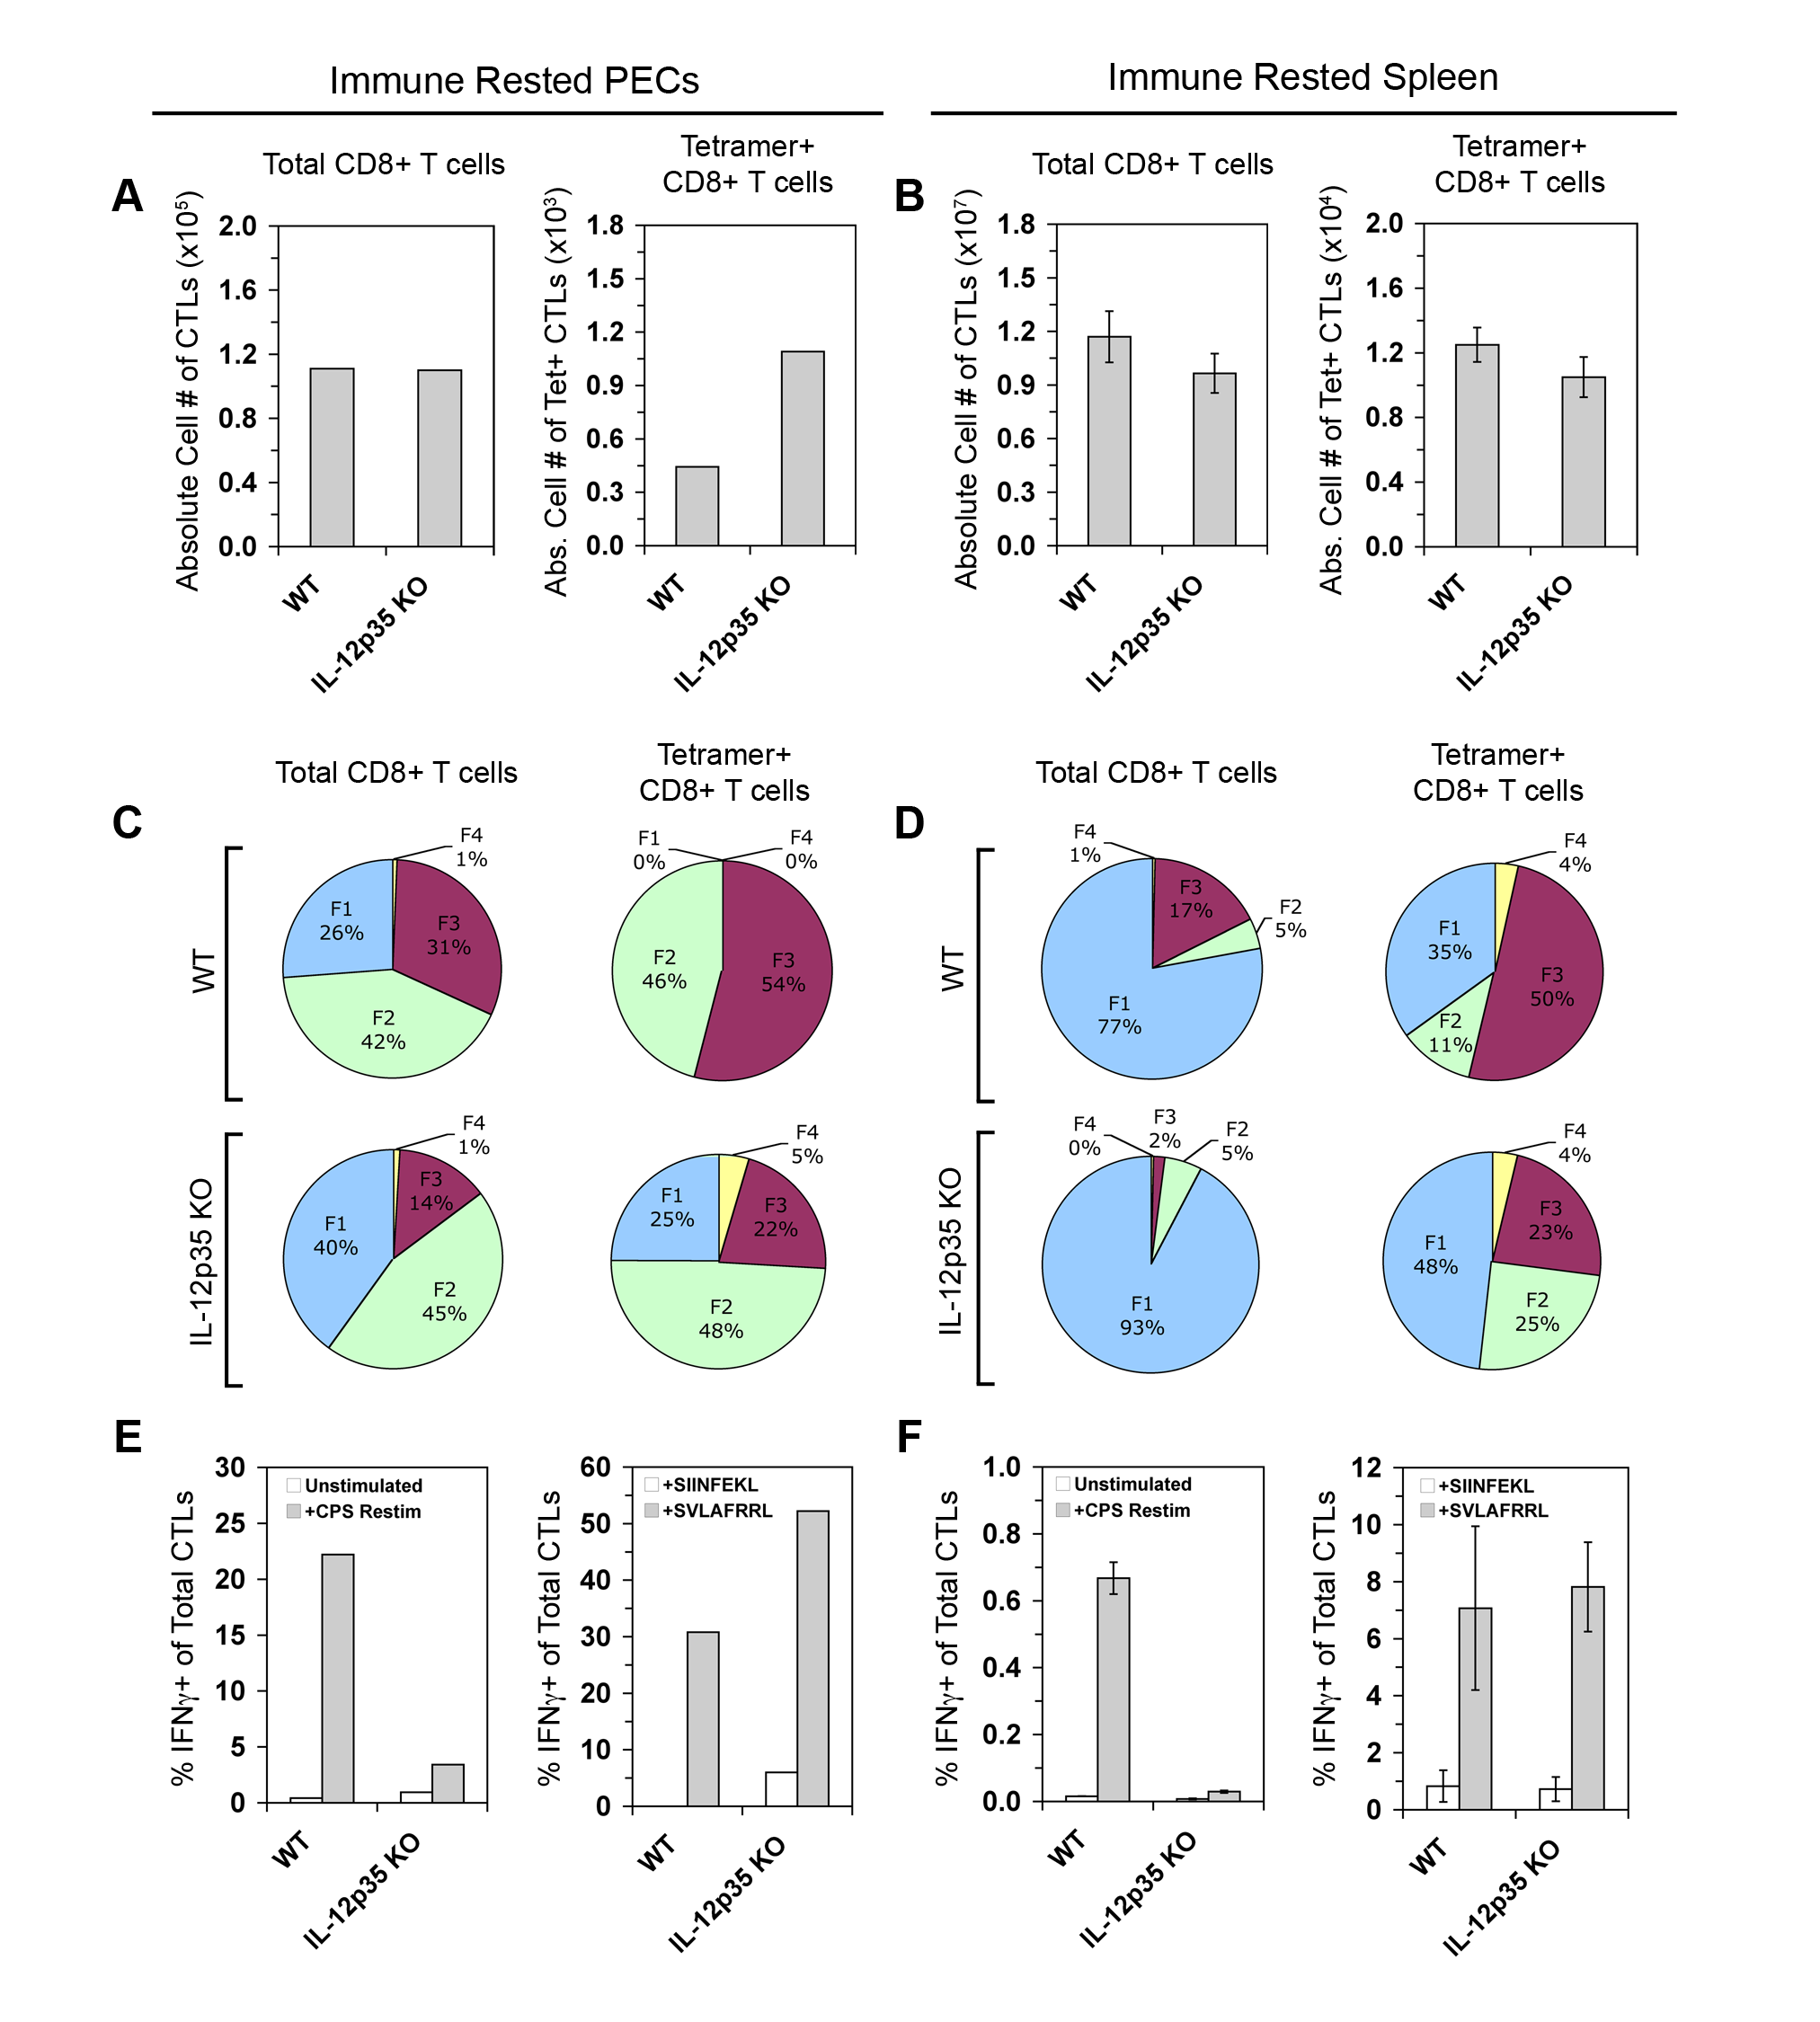 IL-12 is required to differentiate IFN-γ-producing effector memory CTLs.